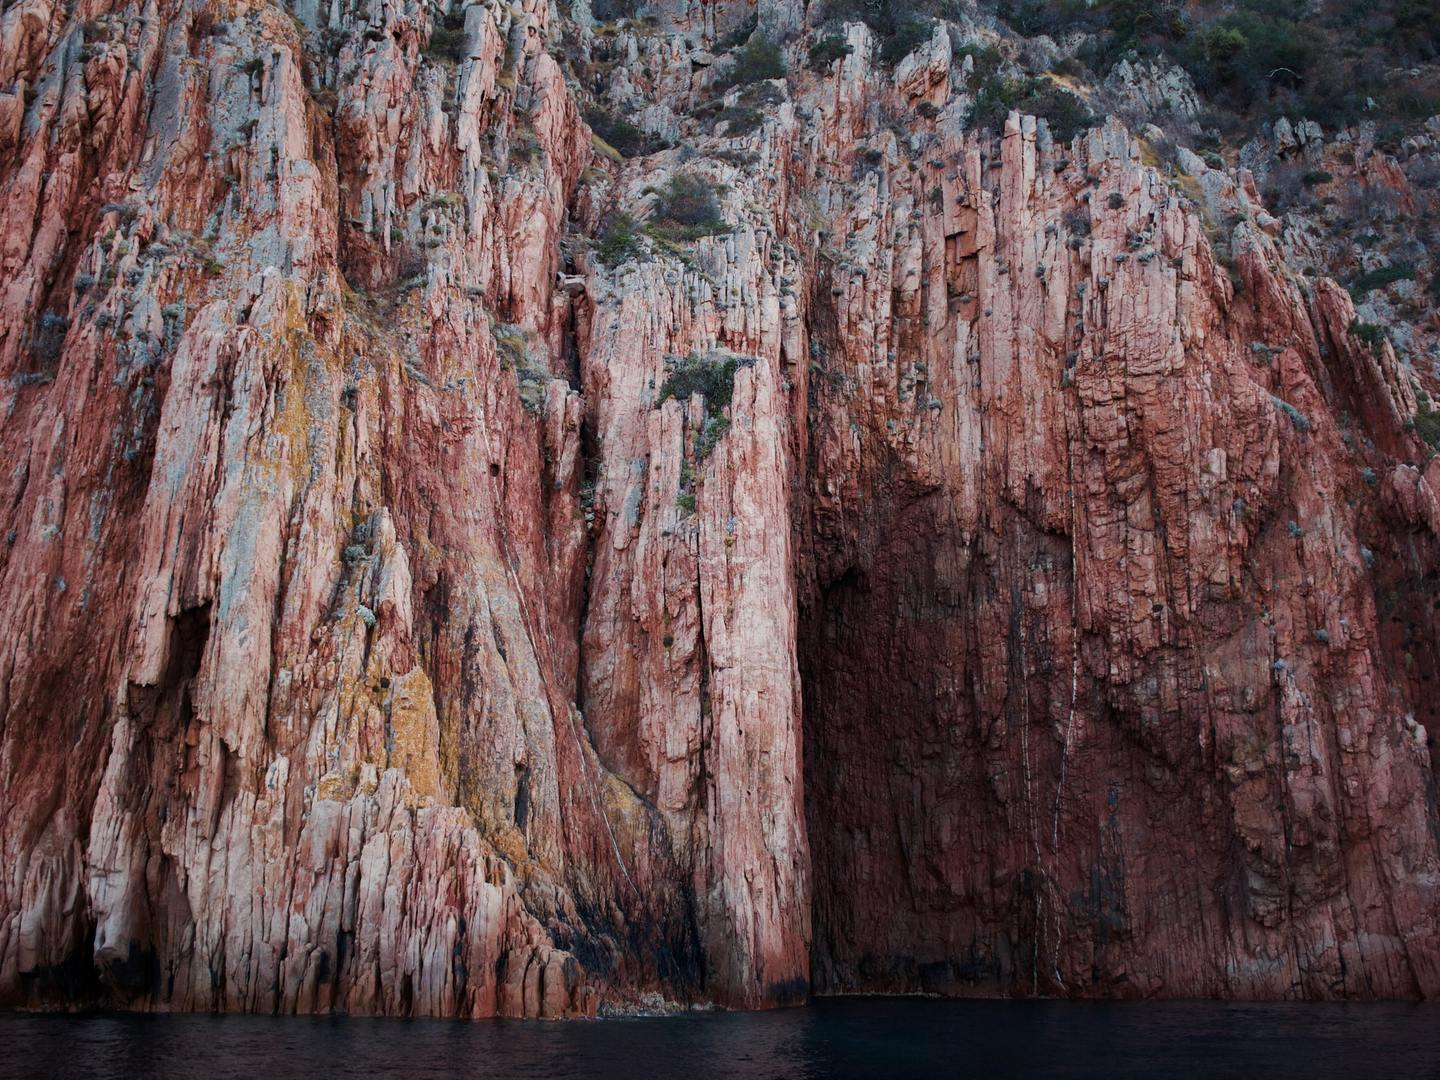 Dramatic cliff face in Corsica